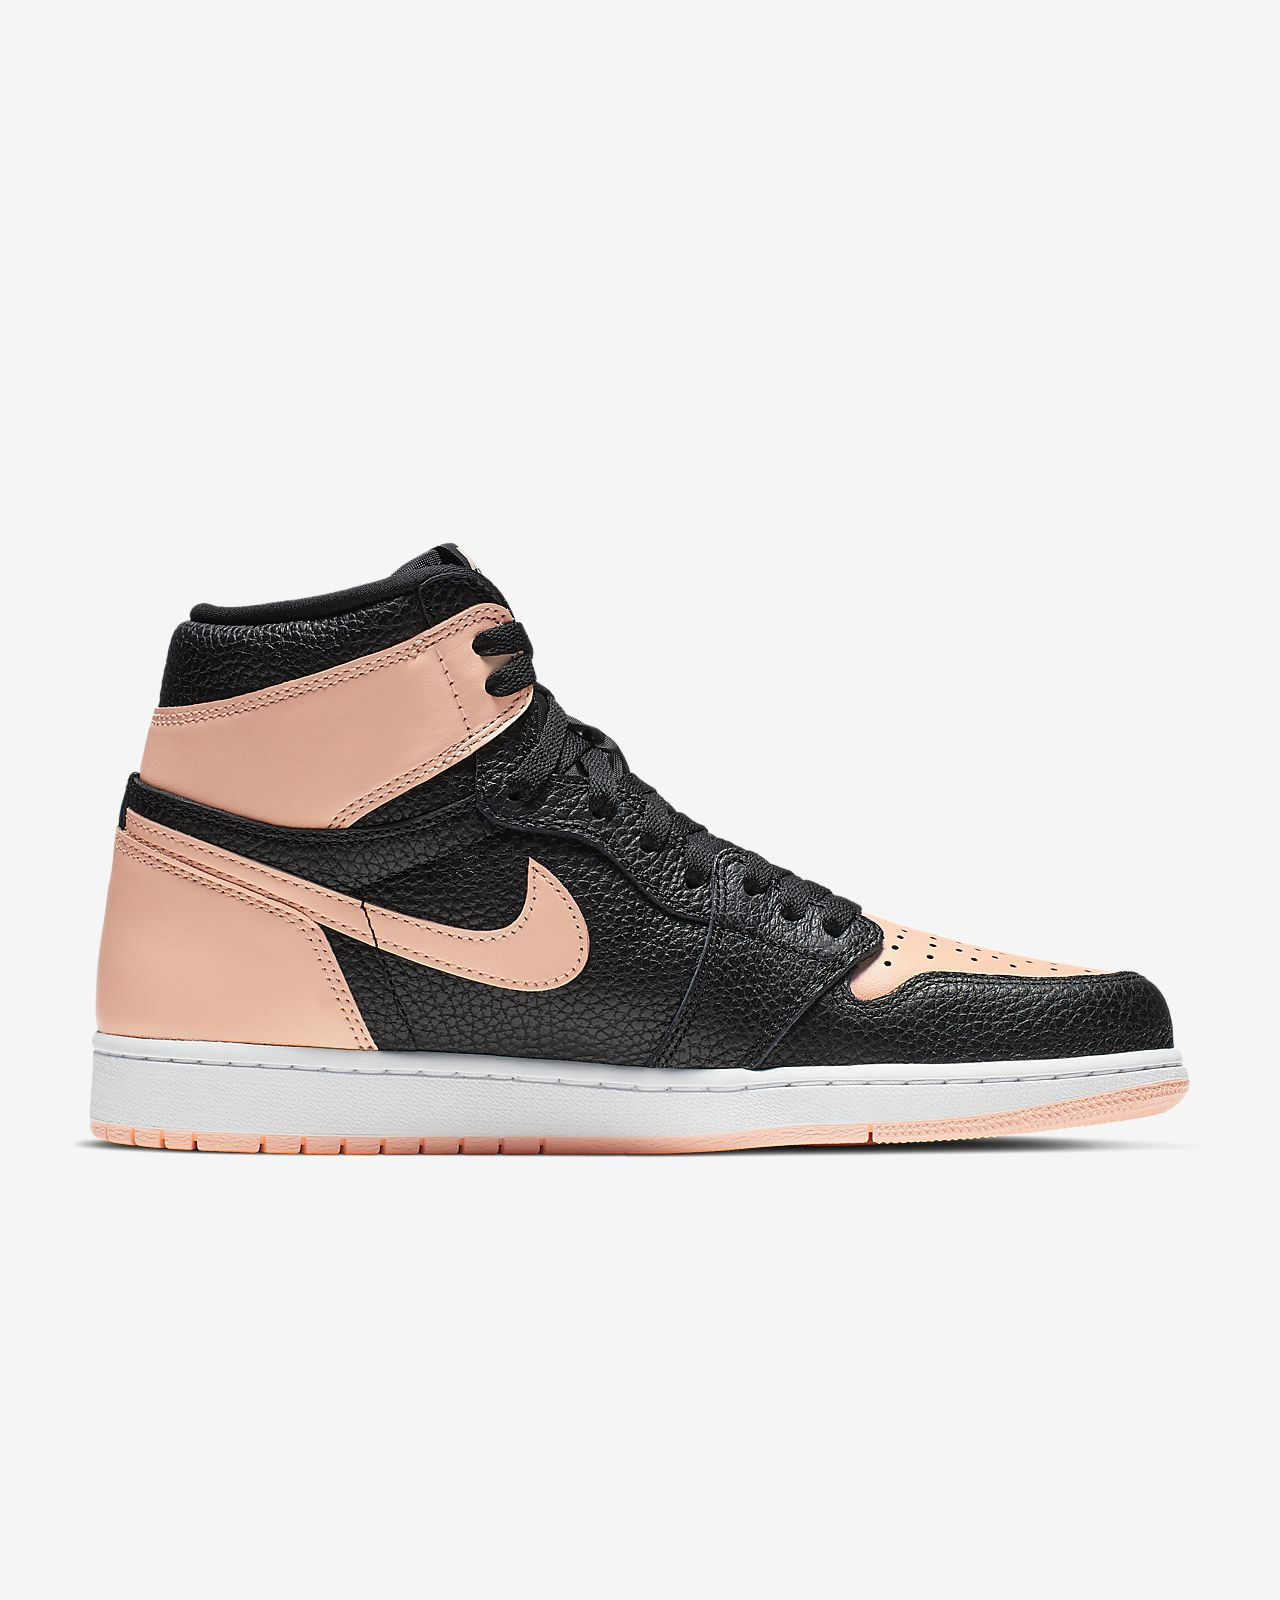 1f0cafc7d538 Air Jordan 1 Retro High OG Shoe. Nike.com